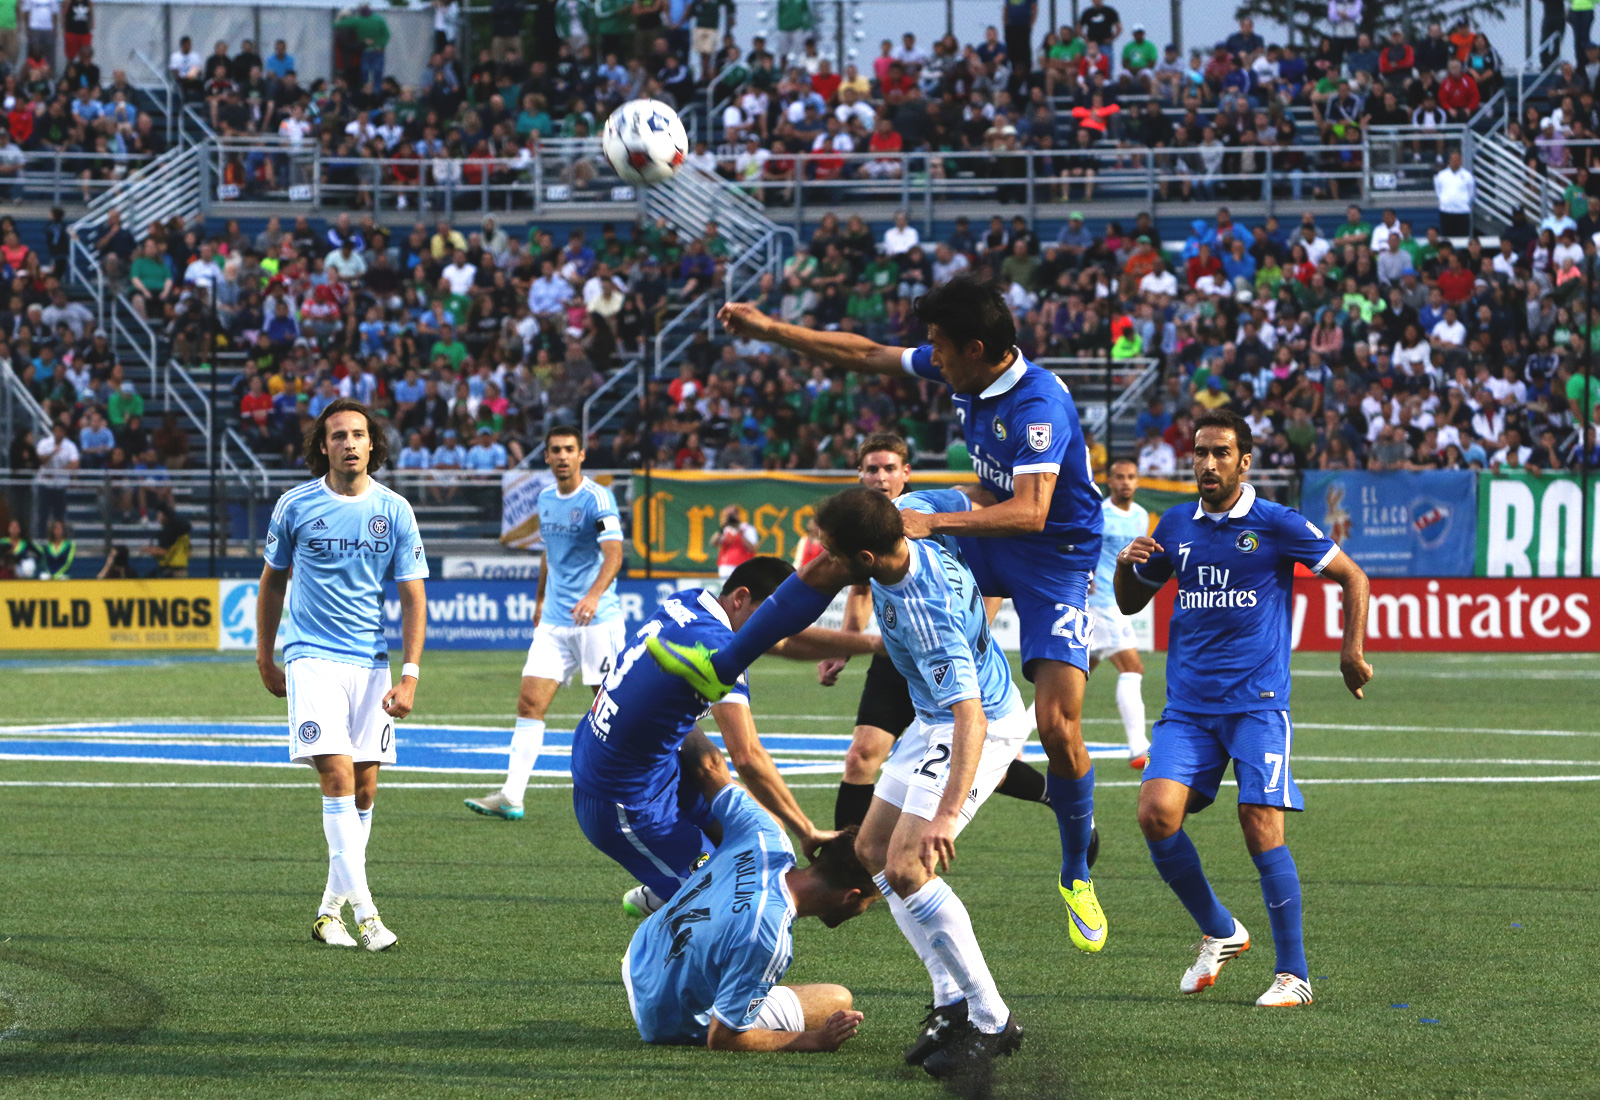 New York Cosmos defender Hunter Gorskie (3) and midfielder Hunter Restrepo (20) get into a physical midfield battle with NYCFC midfielder Pablo Alvarez (22) and forward Patrick Mullins (14).